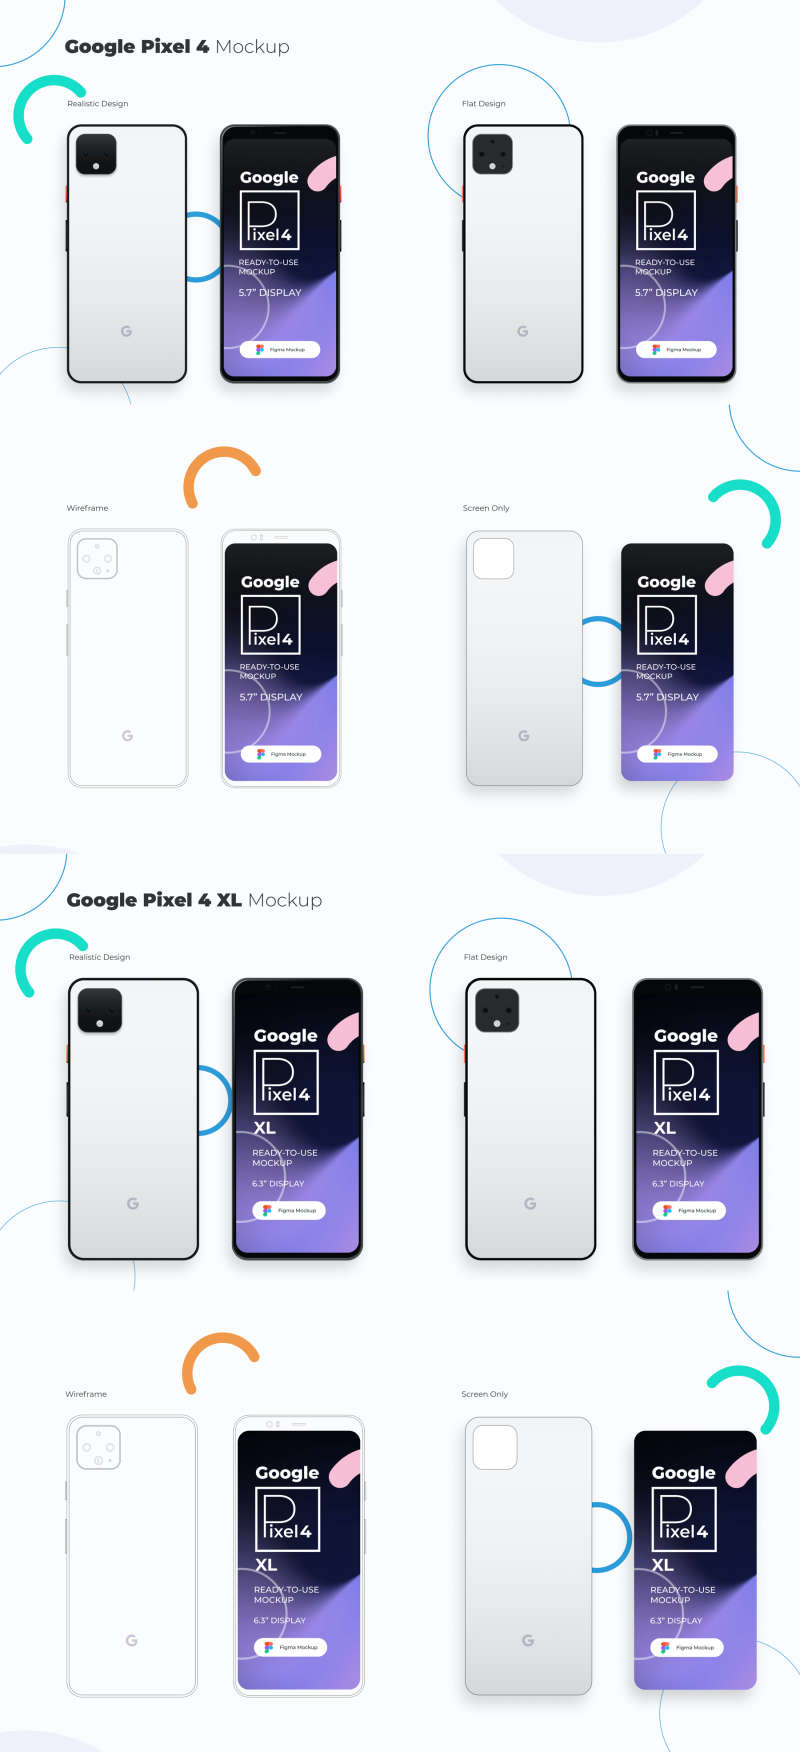 Google Pixel 4 and 4 XL Mockup for Figma